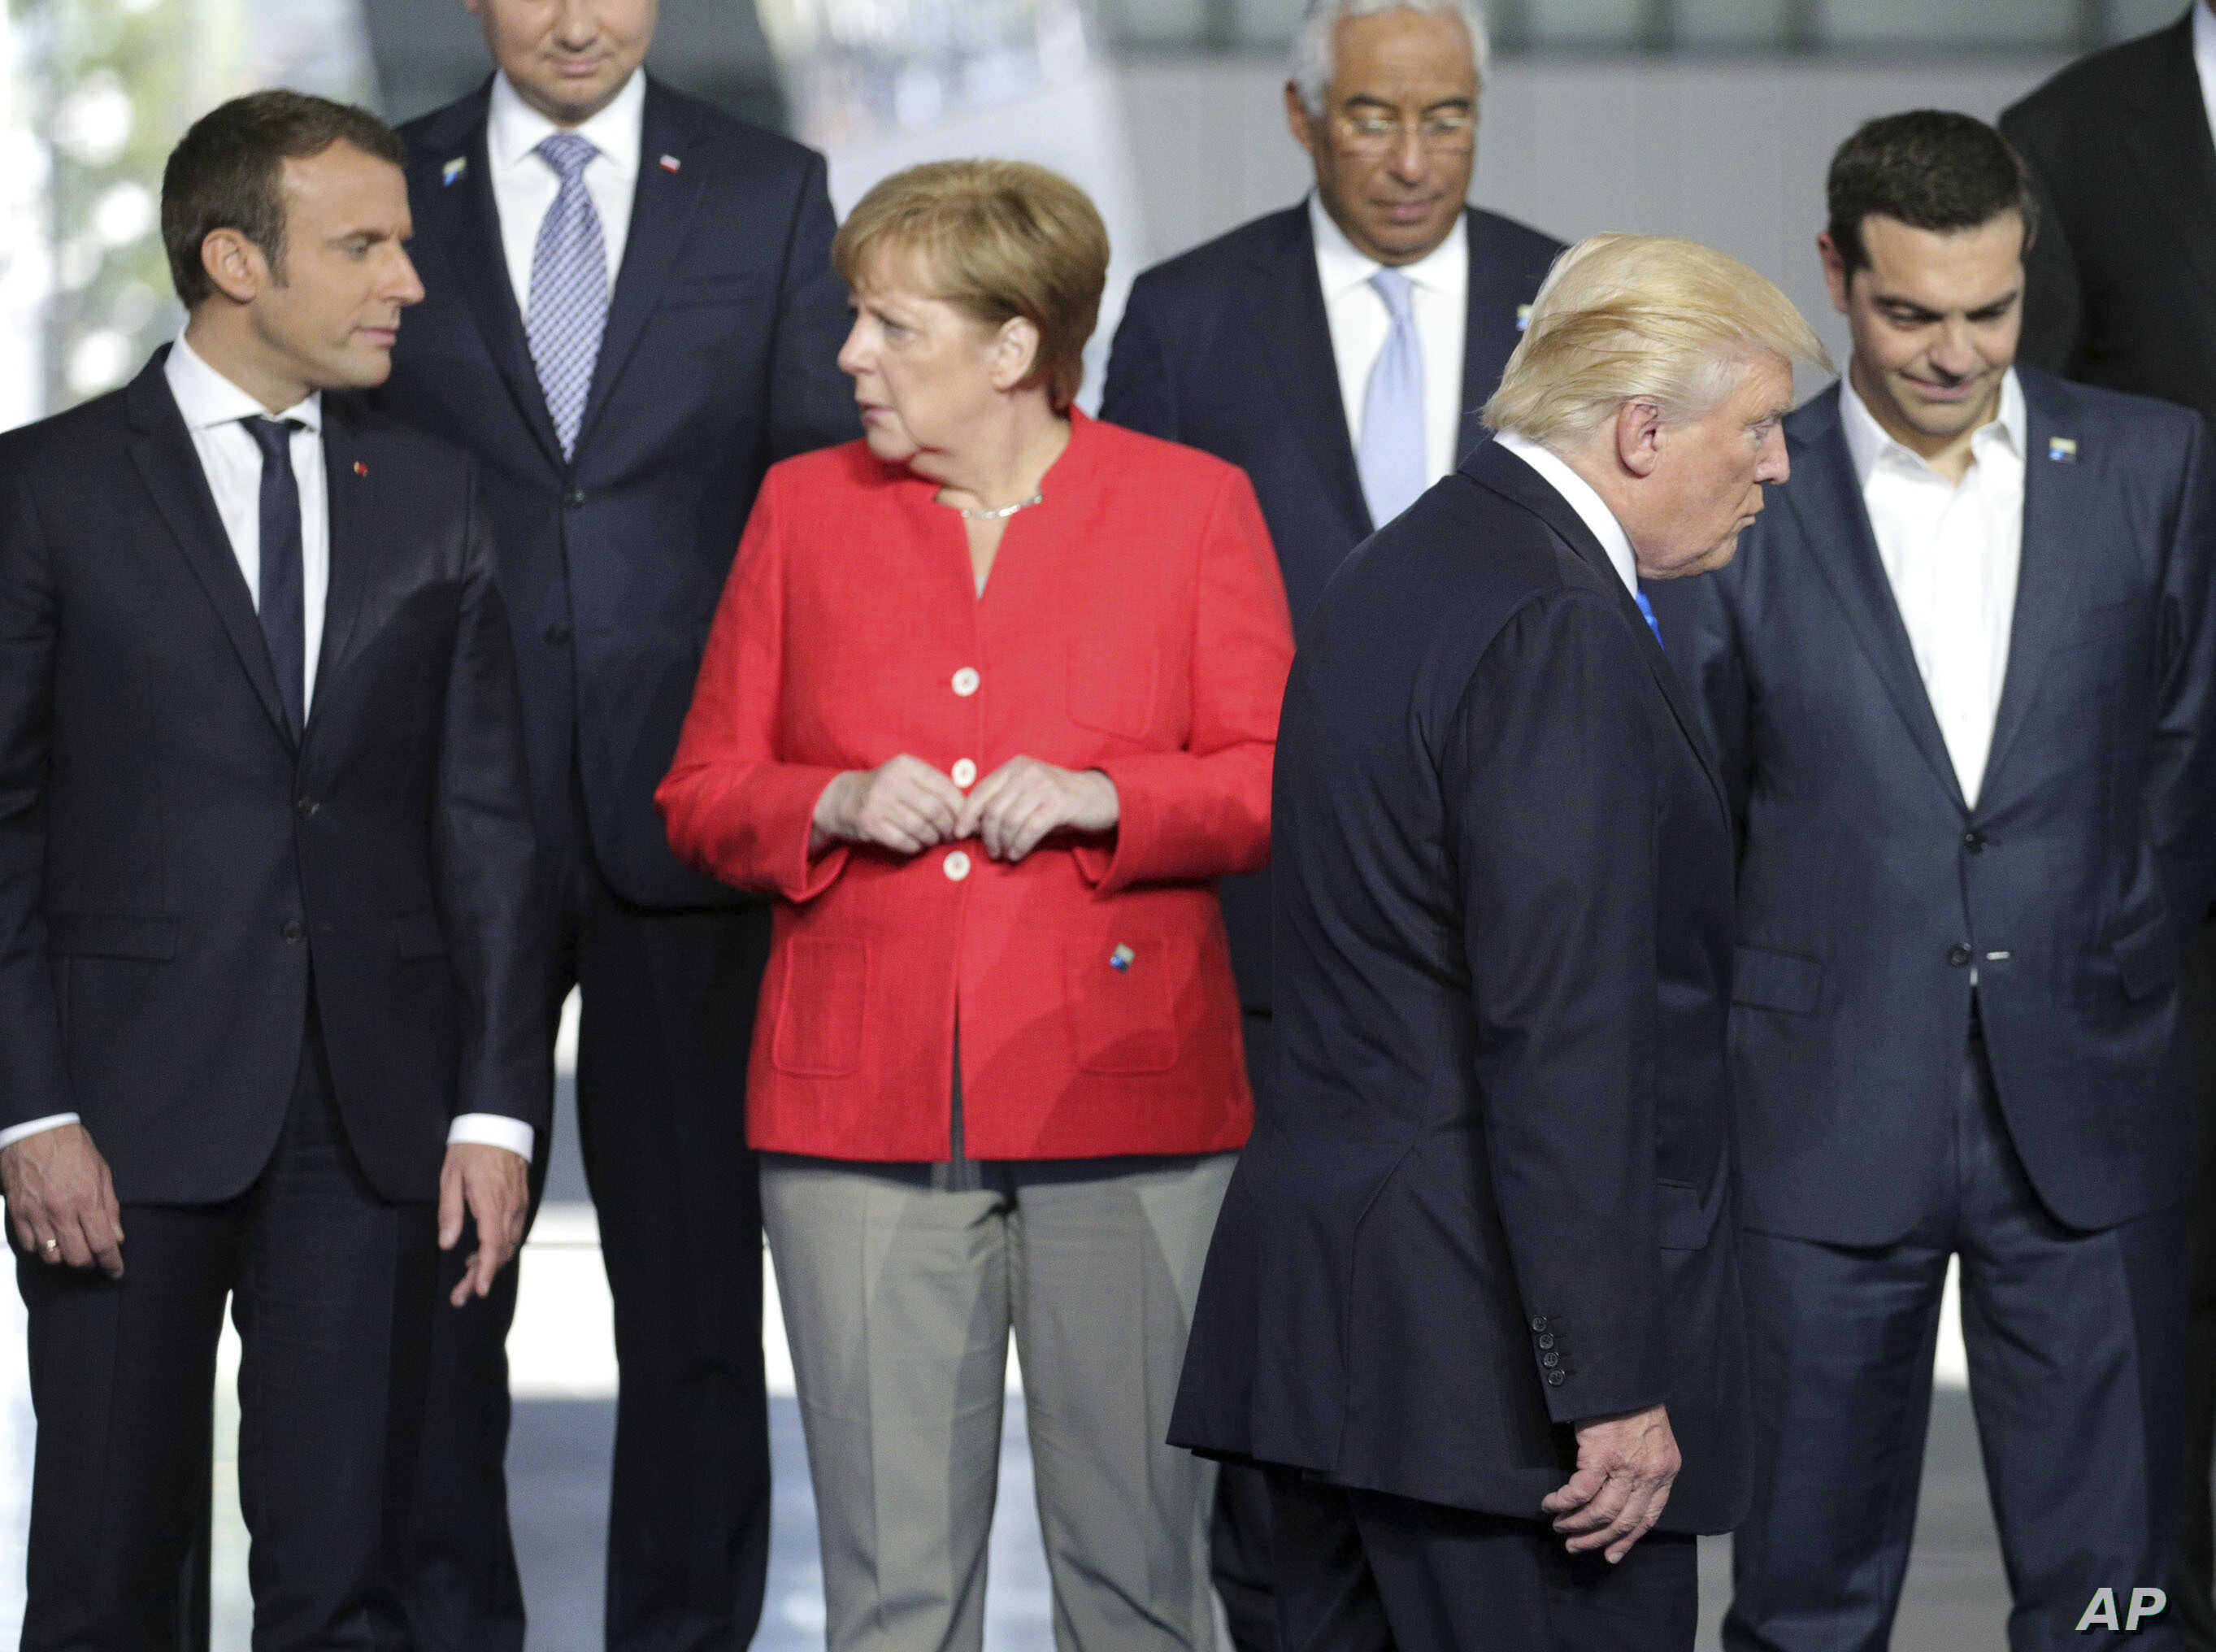 file - French President Emmanuel Macron, left, speaks with German Chancellor Angela Merkel, second left, as U.S. President Donald Trump walks to take his position during a group photo at the new NATO headquarters in Brussels on Thursday, May 25, 2017